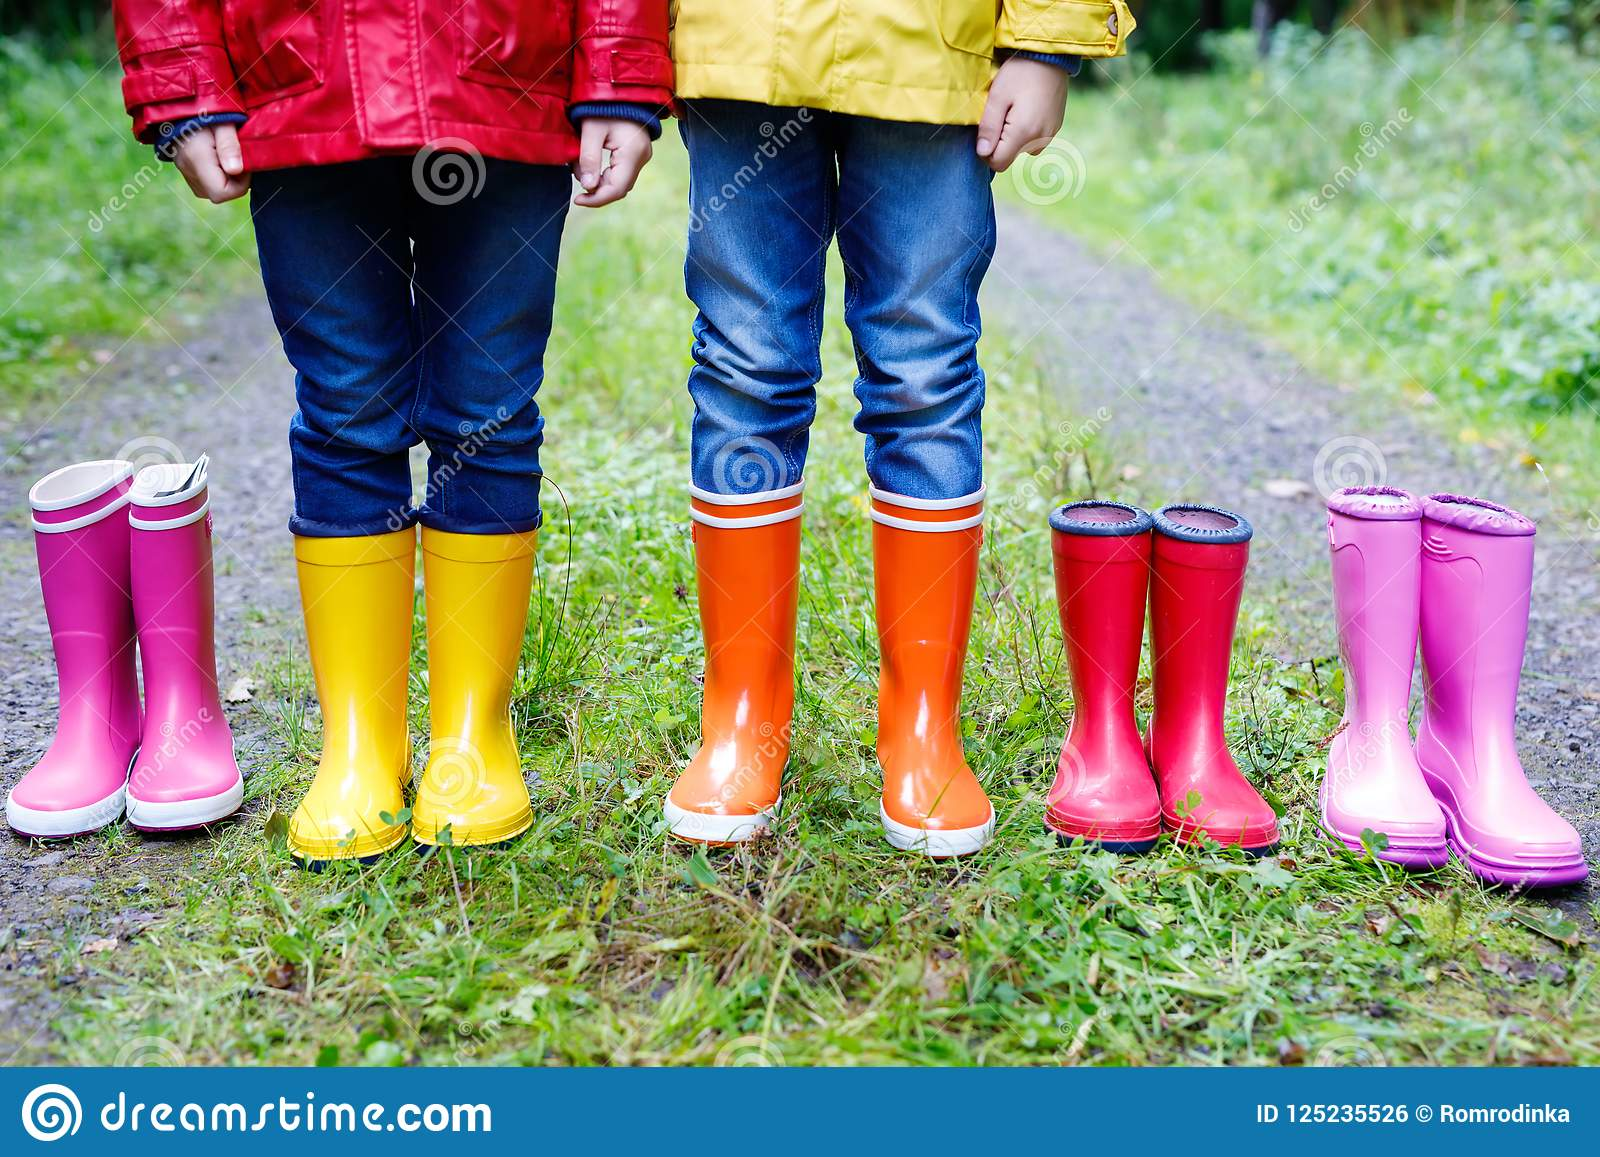 589edbdf62ad Children standing in autumn forest. Close-up of schoolkids and different  rubber boots. Footwear and fashion for rainy fall.